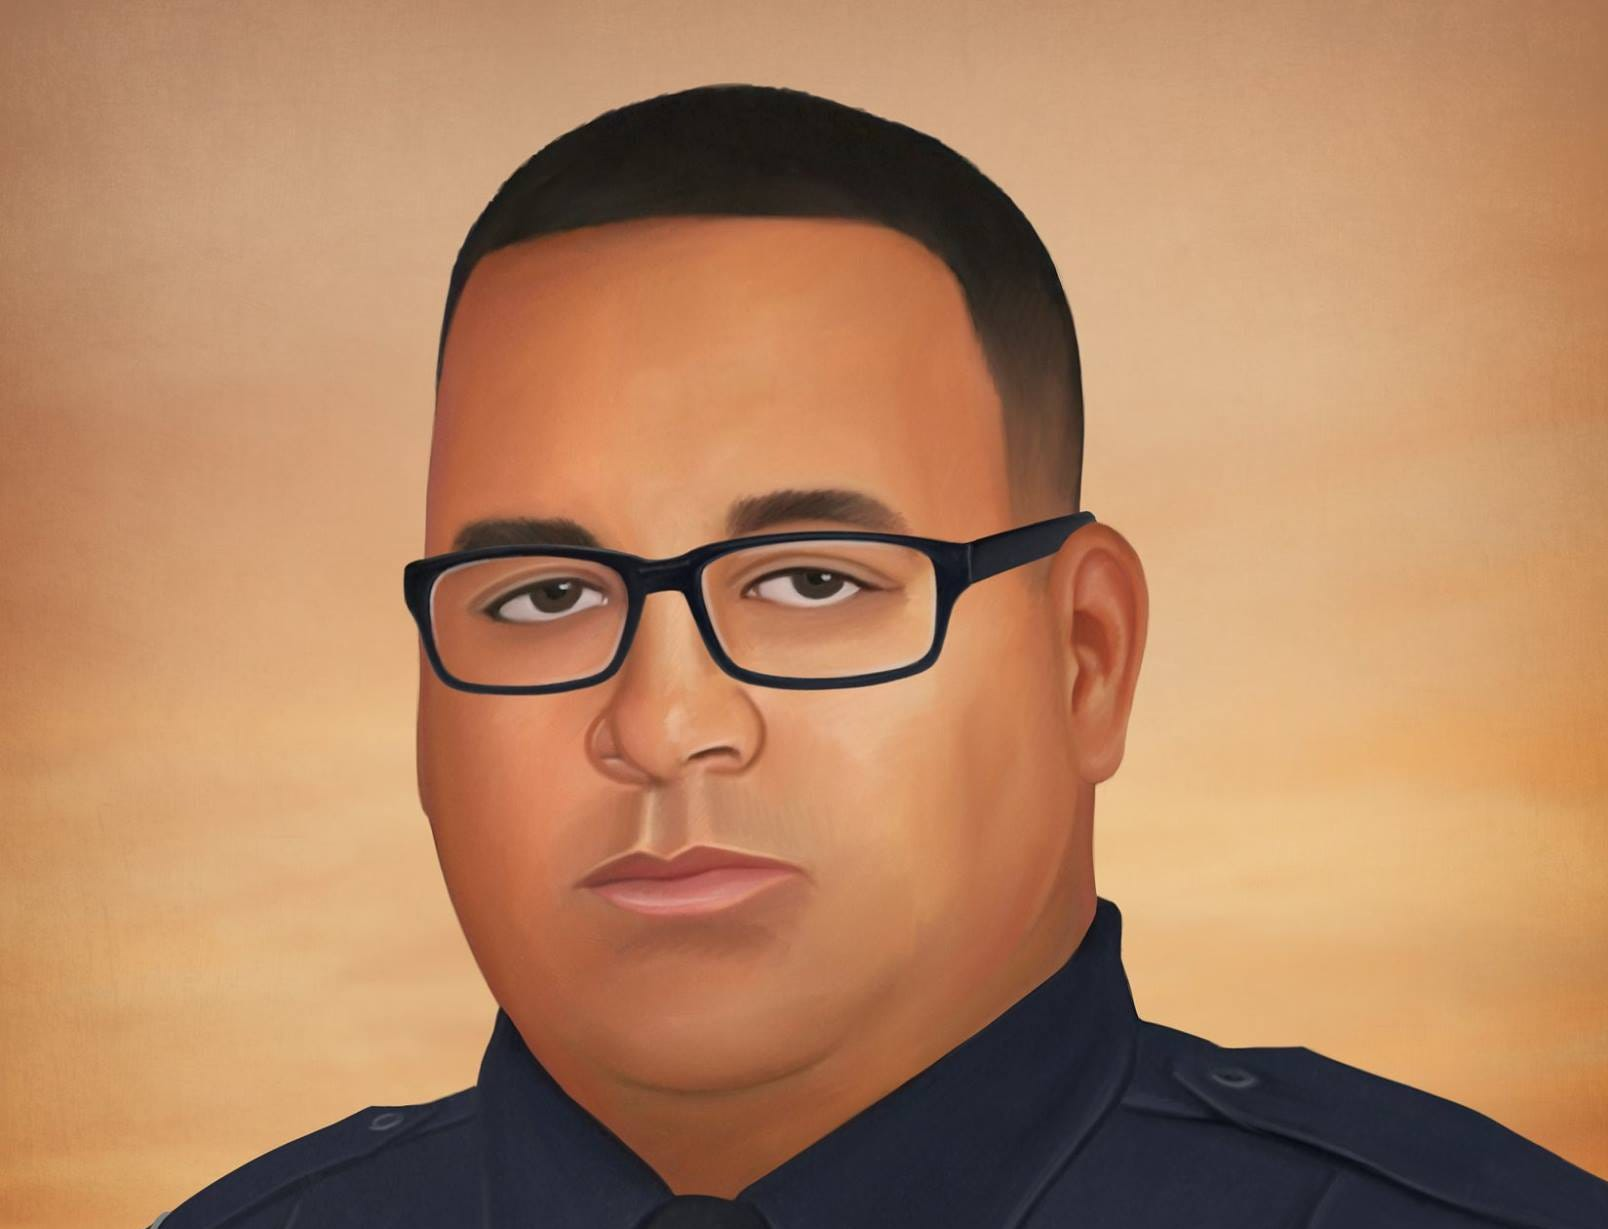 On December 15th, Lumberton (North Carolina) Police Officer Jason Quick had responded to a vehicle accident on Interstate 95. While investigating the crash, Jason was fatally struck by another vehicle. 